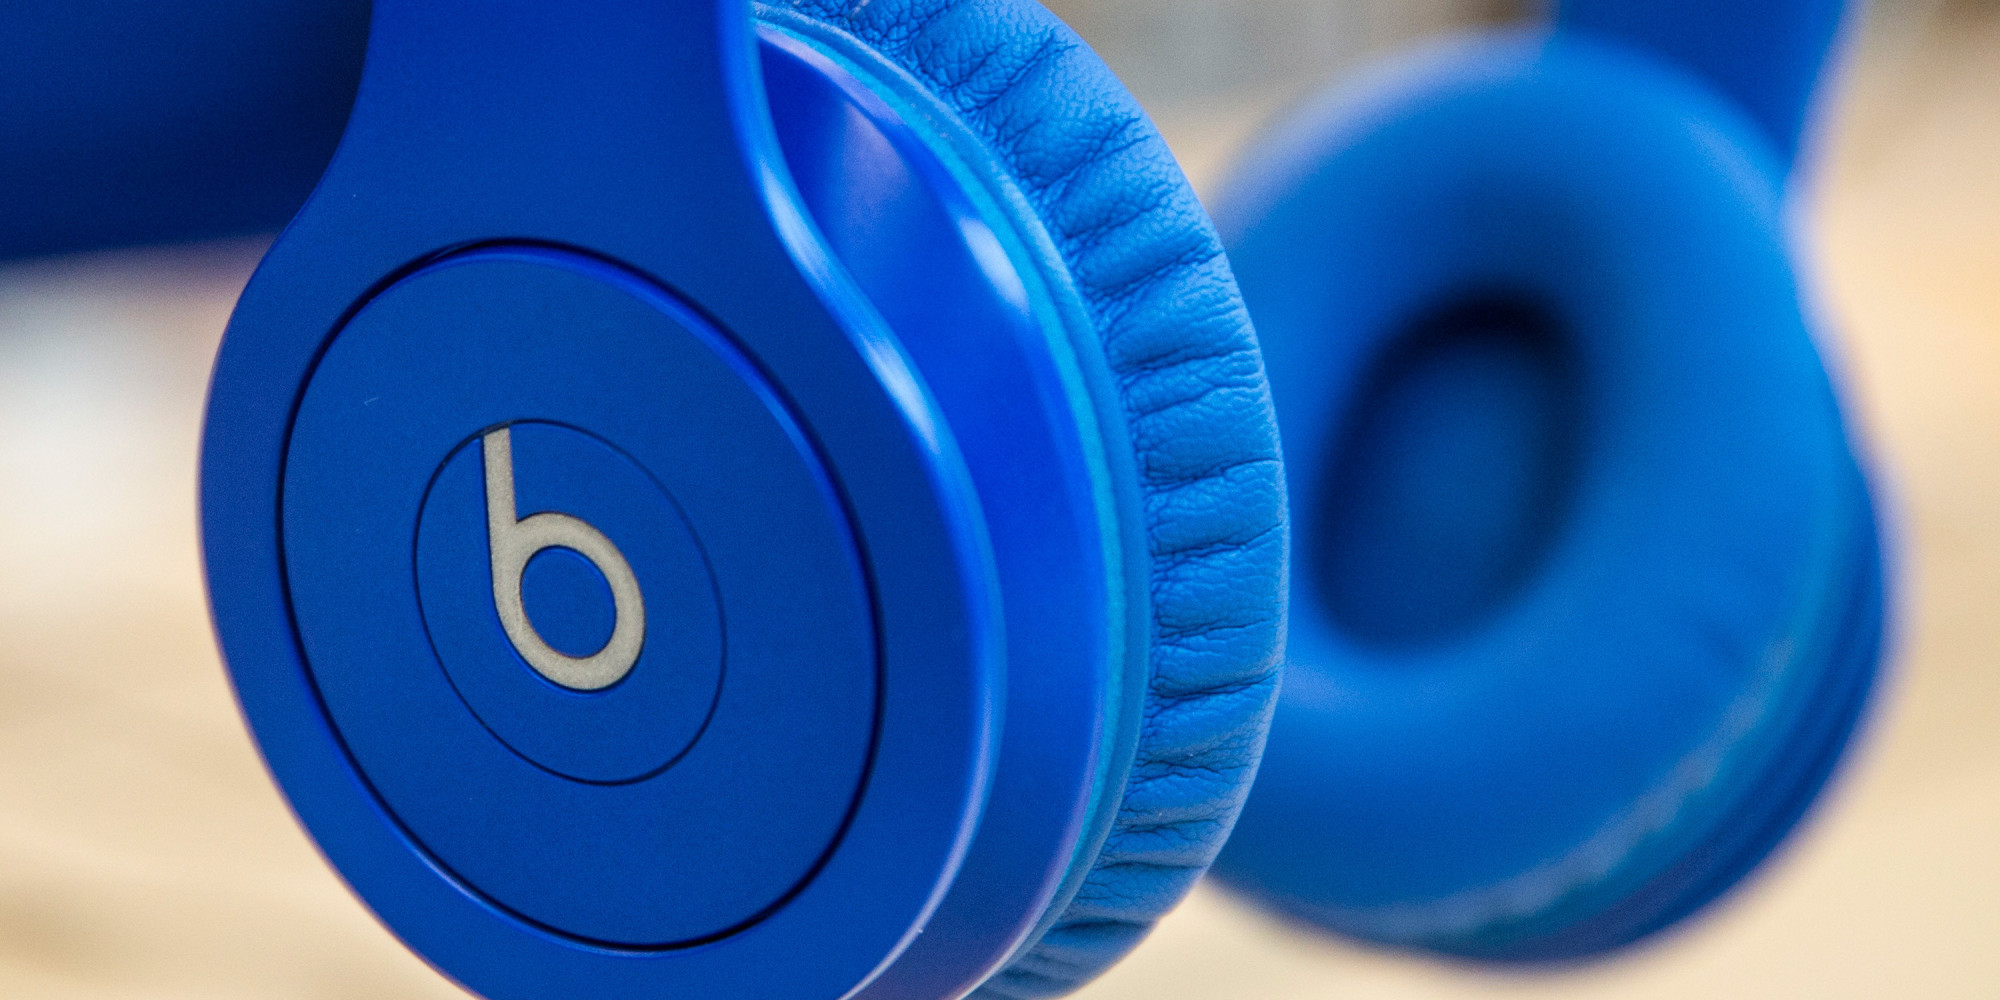 Image How Much Do Beats Cost At Walmart Download